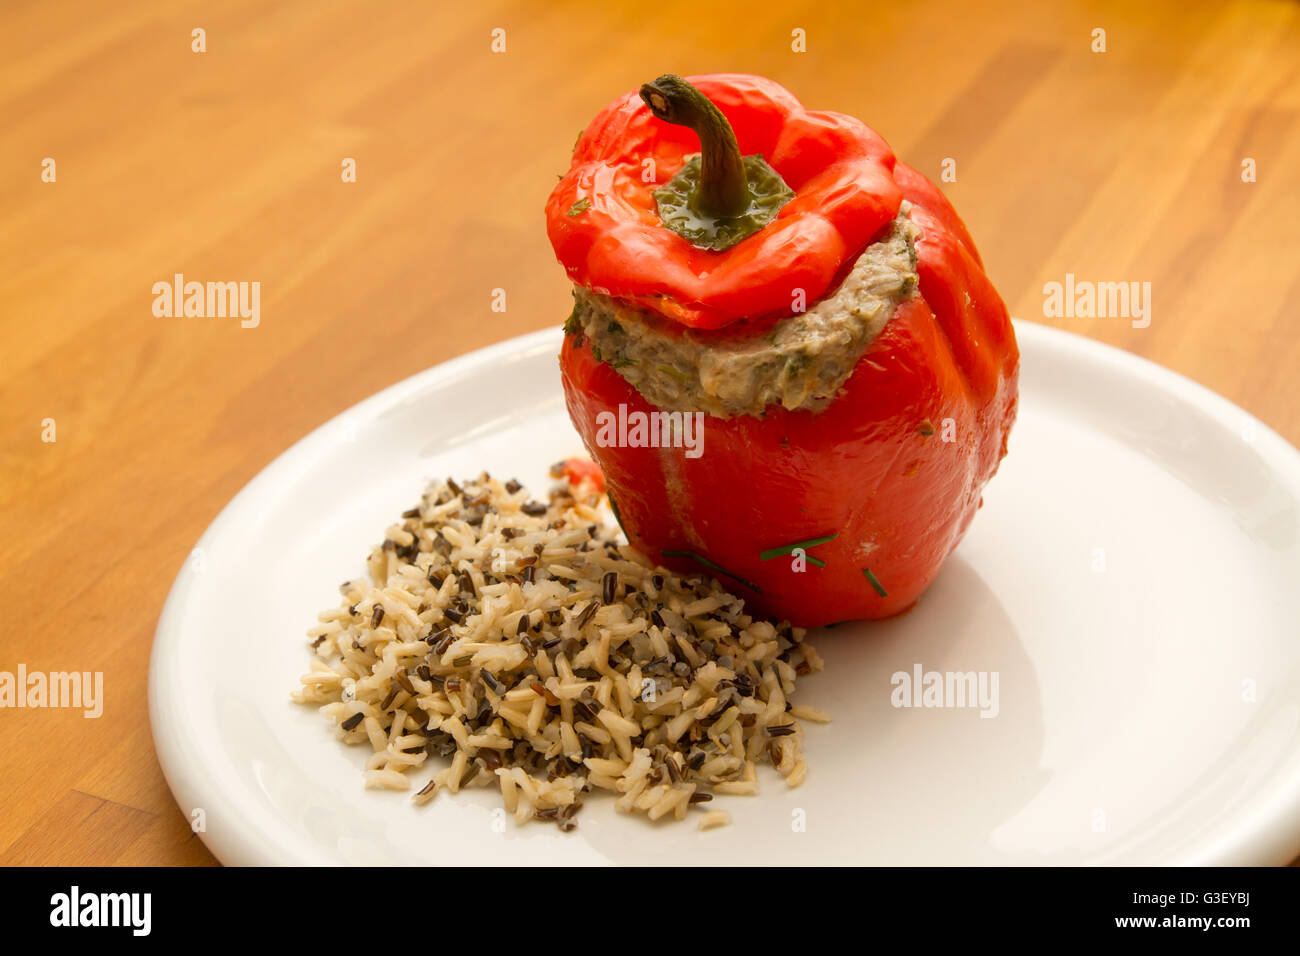 Peppers stuffed with minced meat and rice - Stock Image